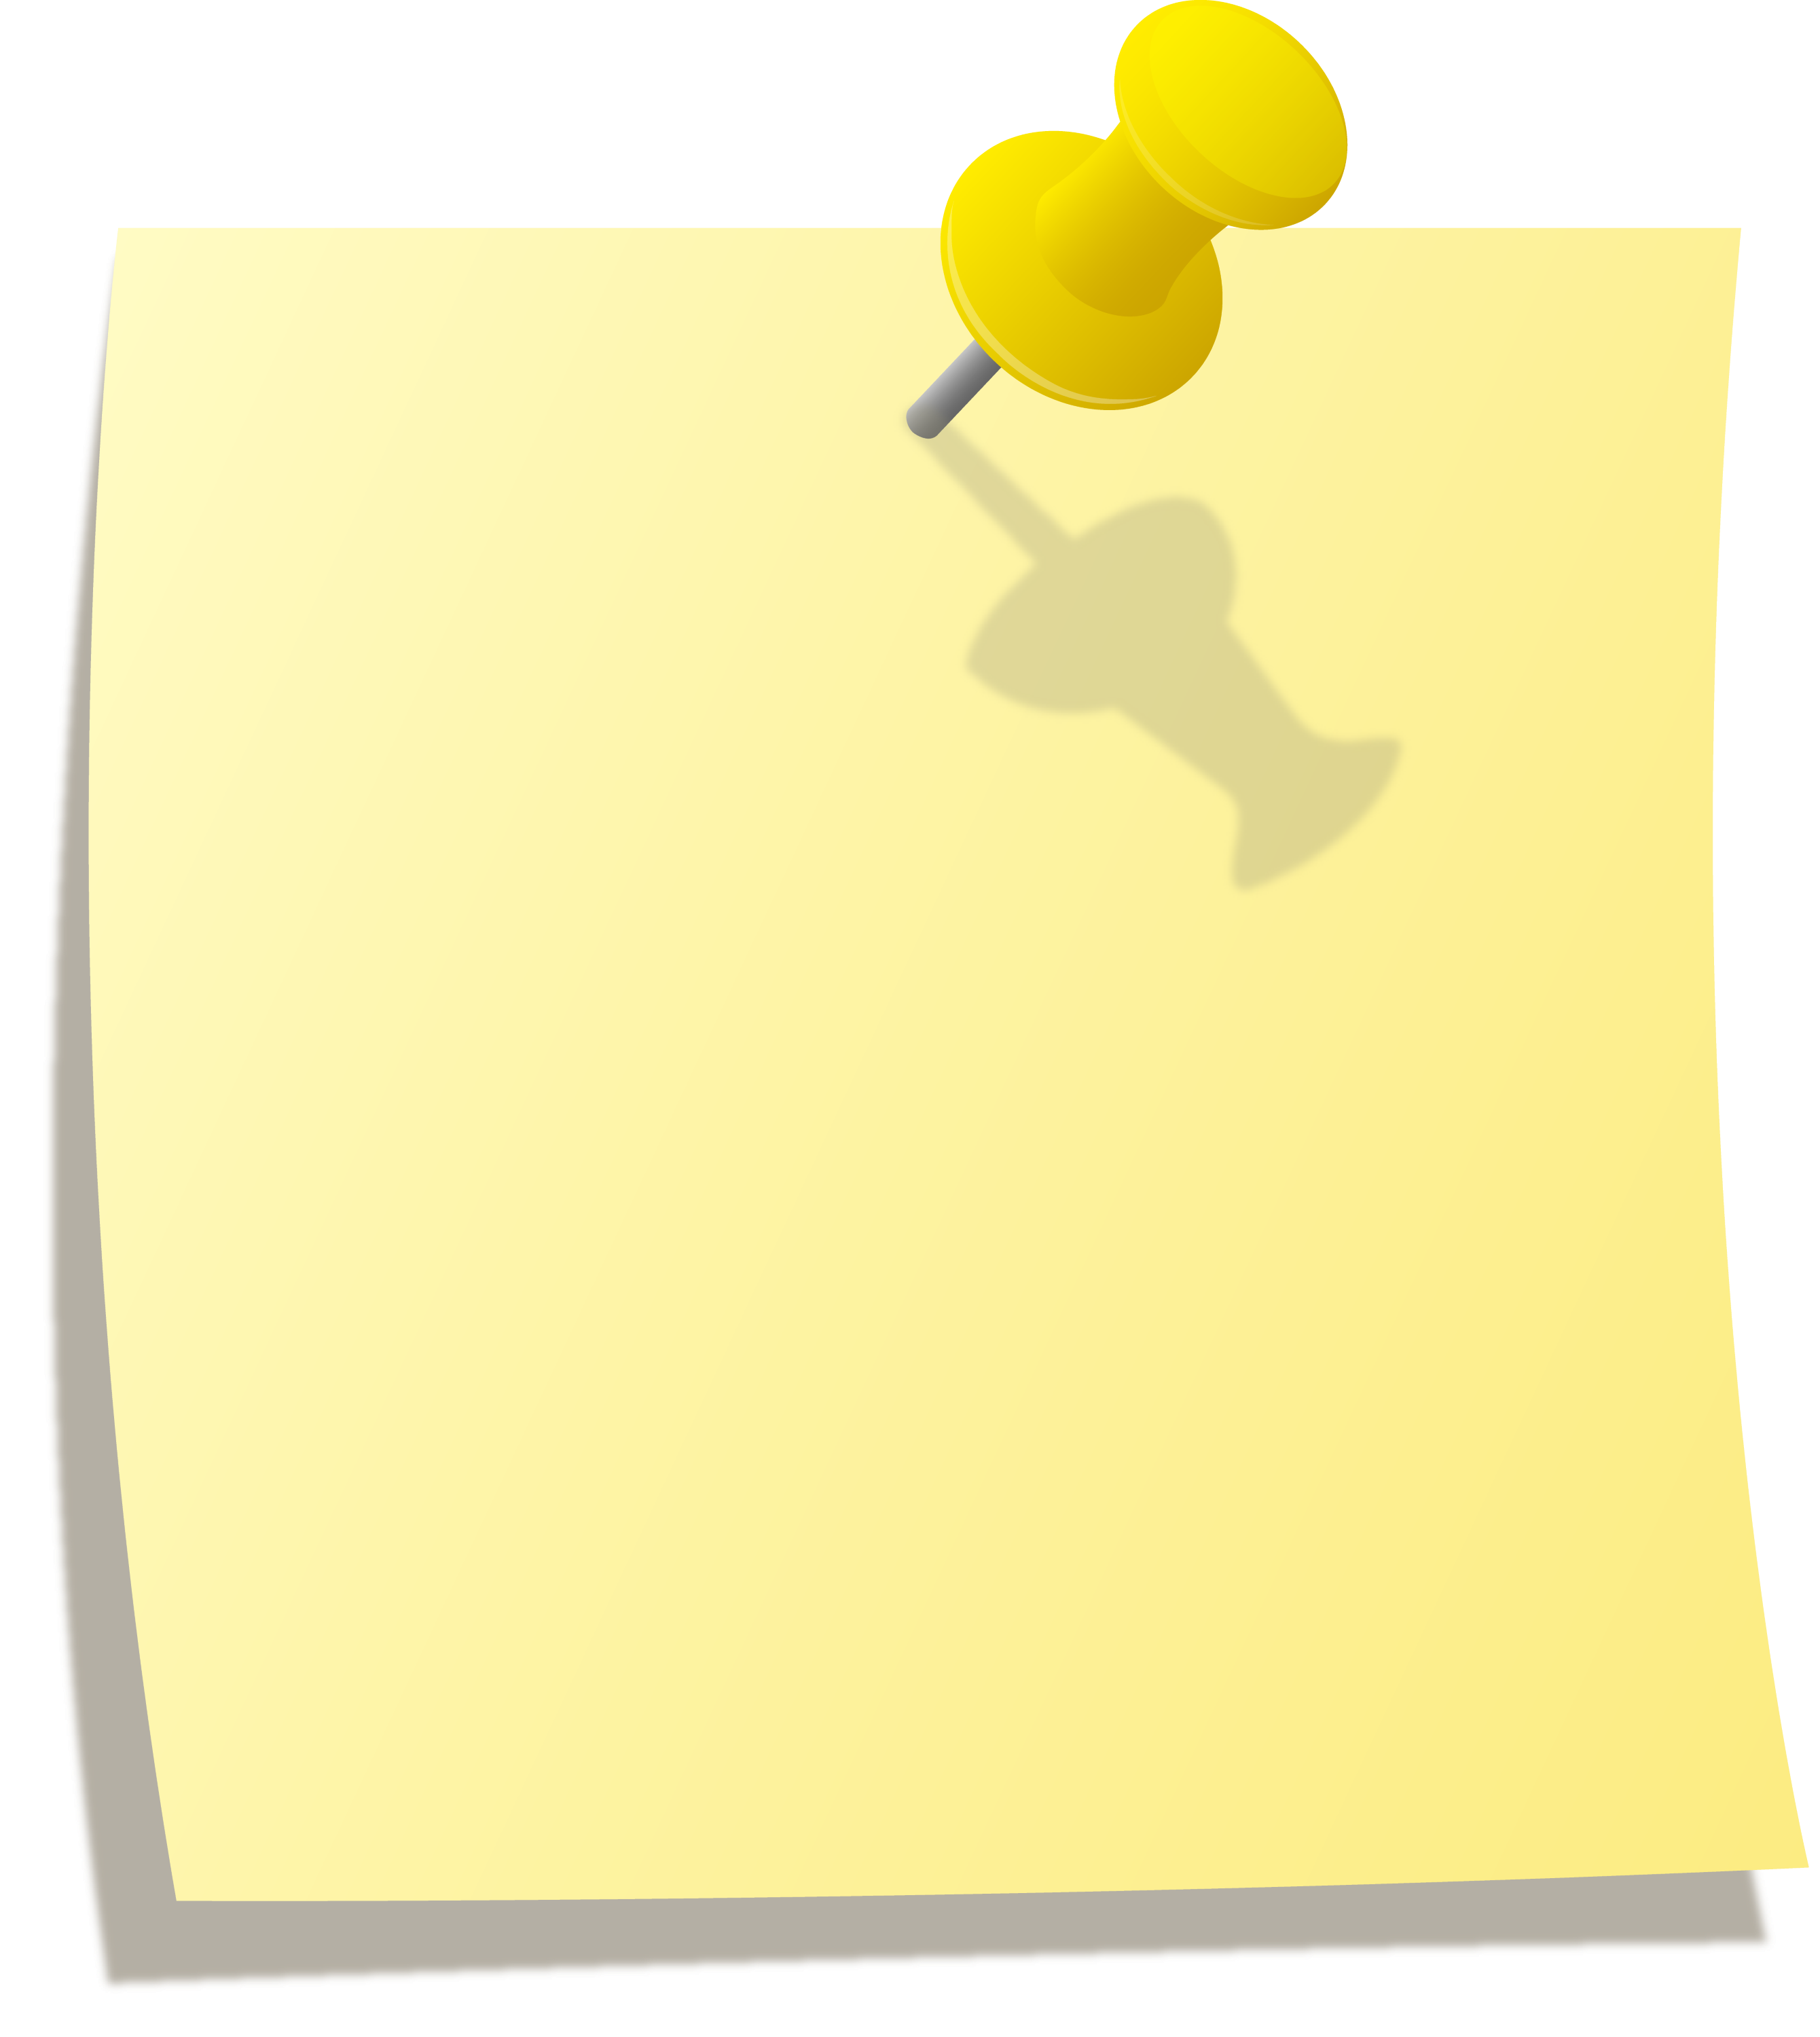 Yellow Note With Thumbtack - Free Clip Art